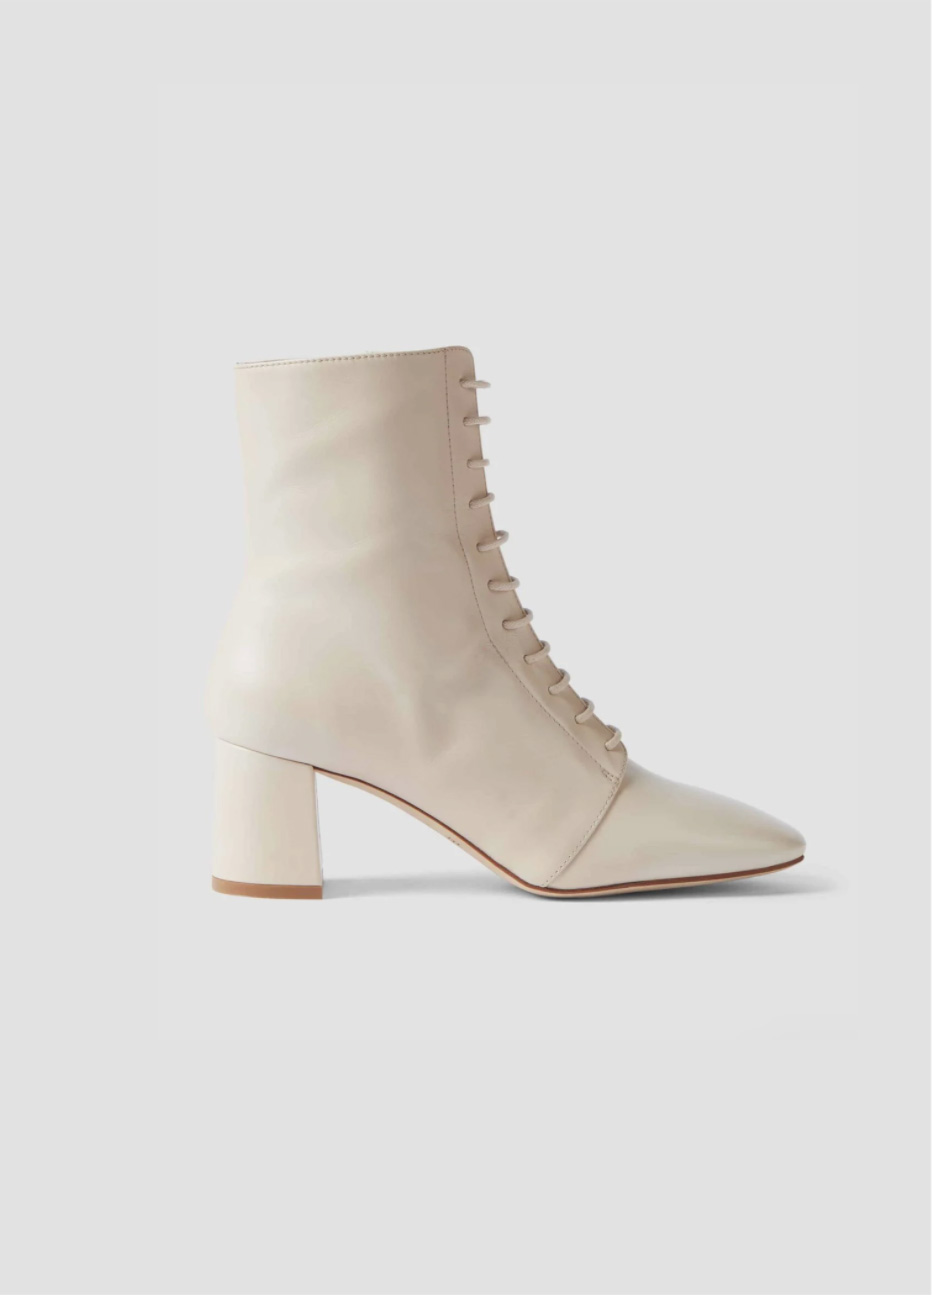 Women's leather mid-heeled lace up boot in white from Hobbs.